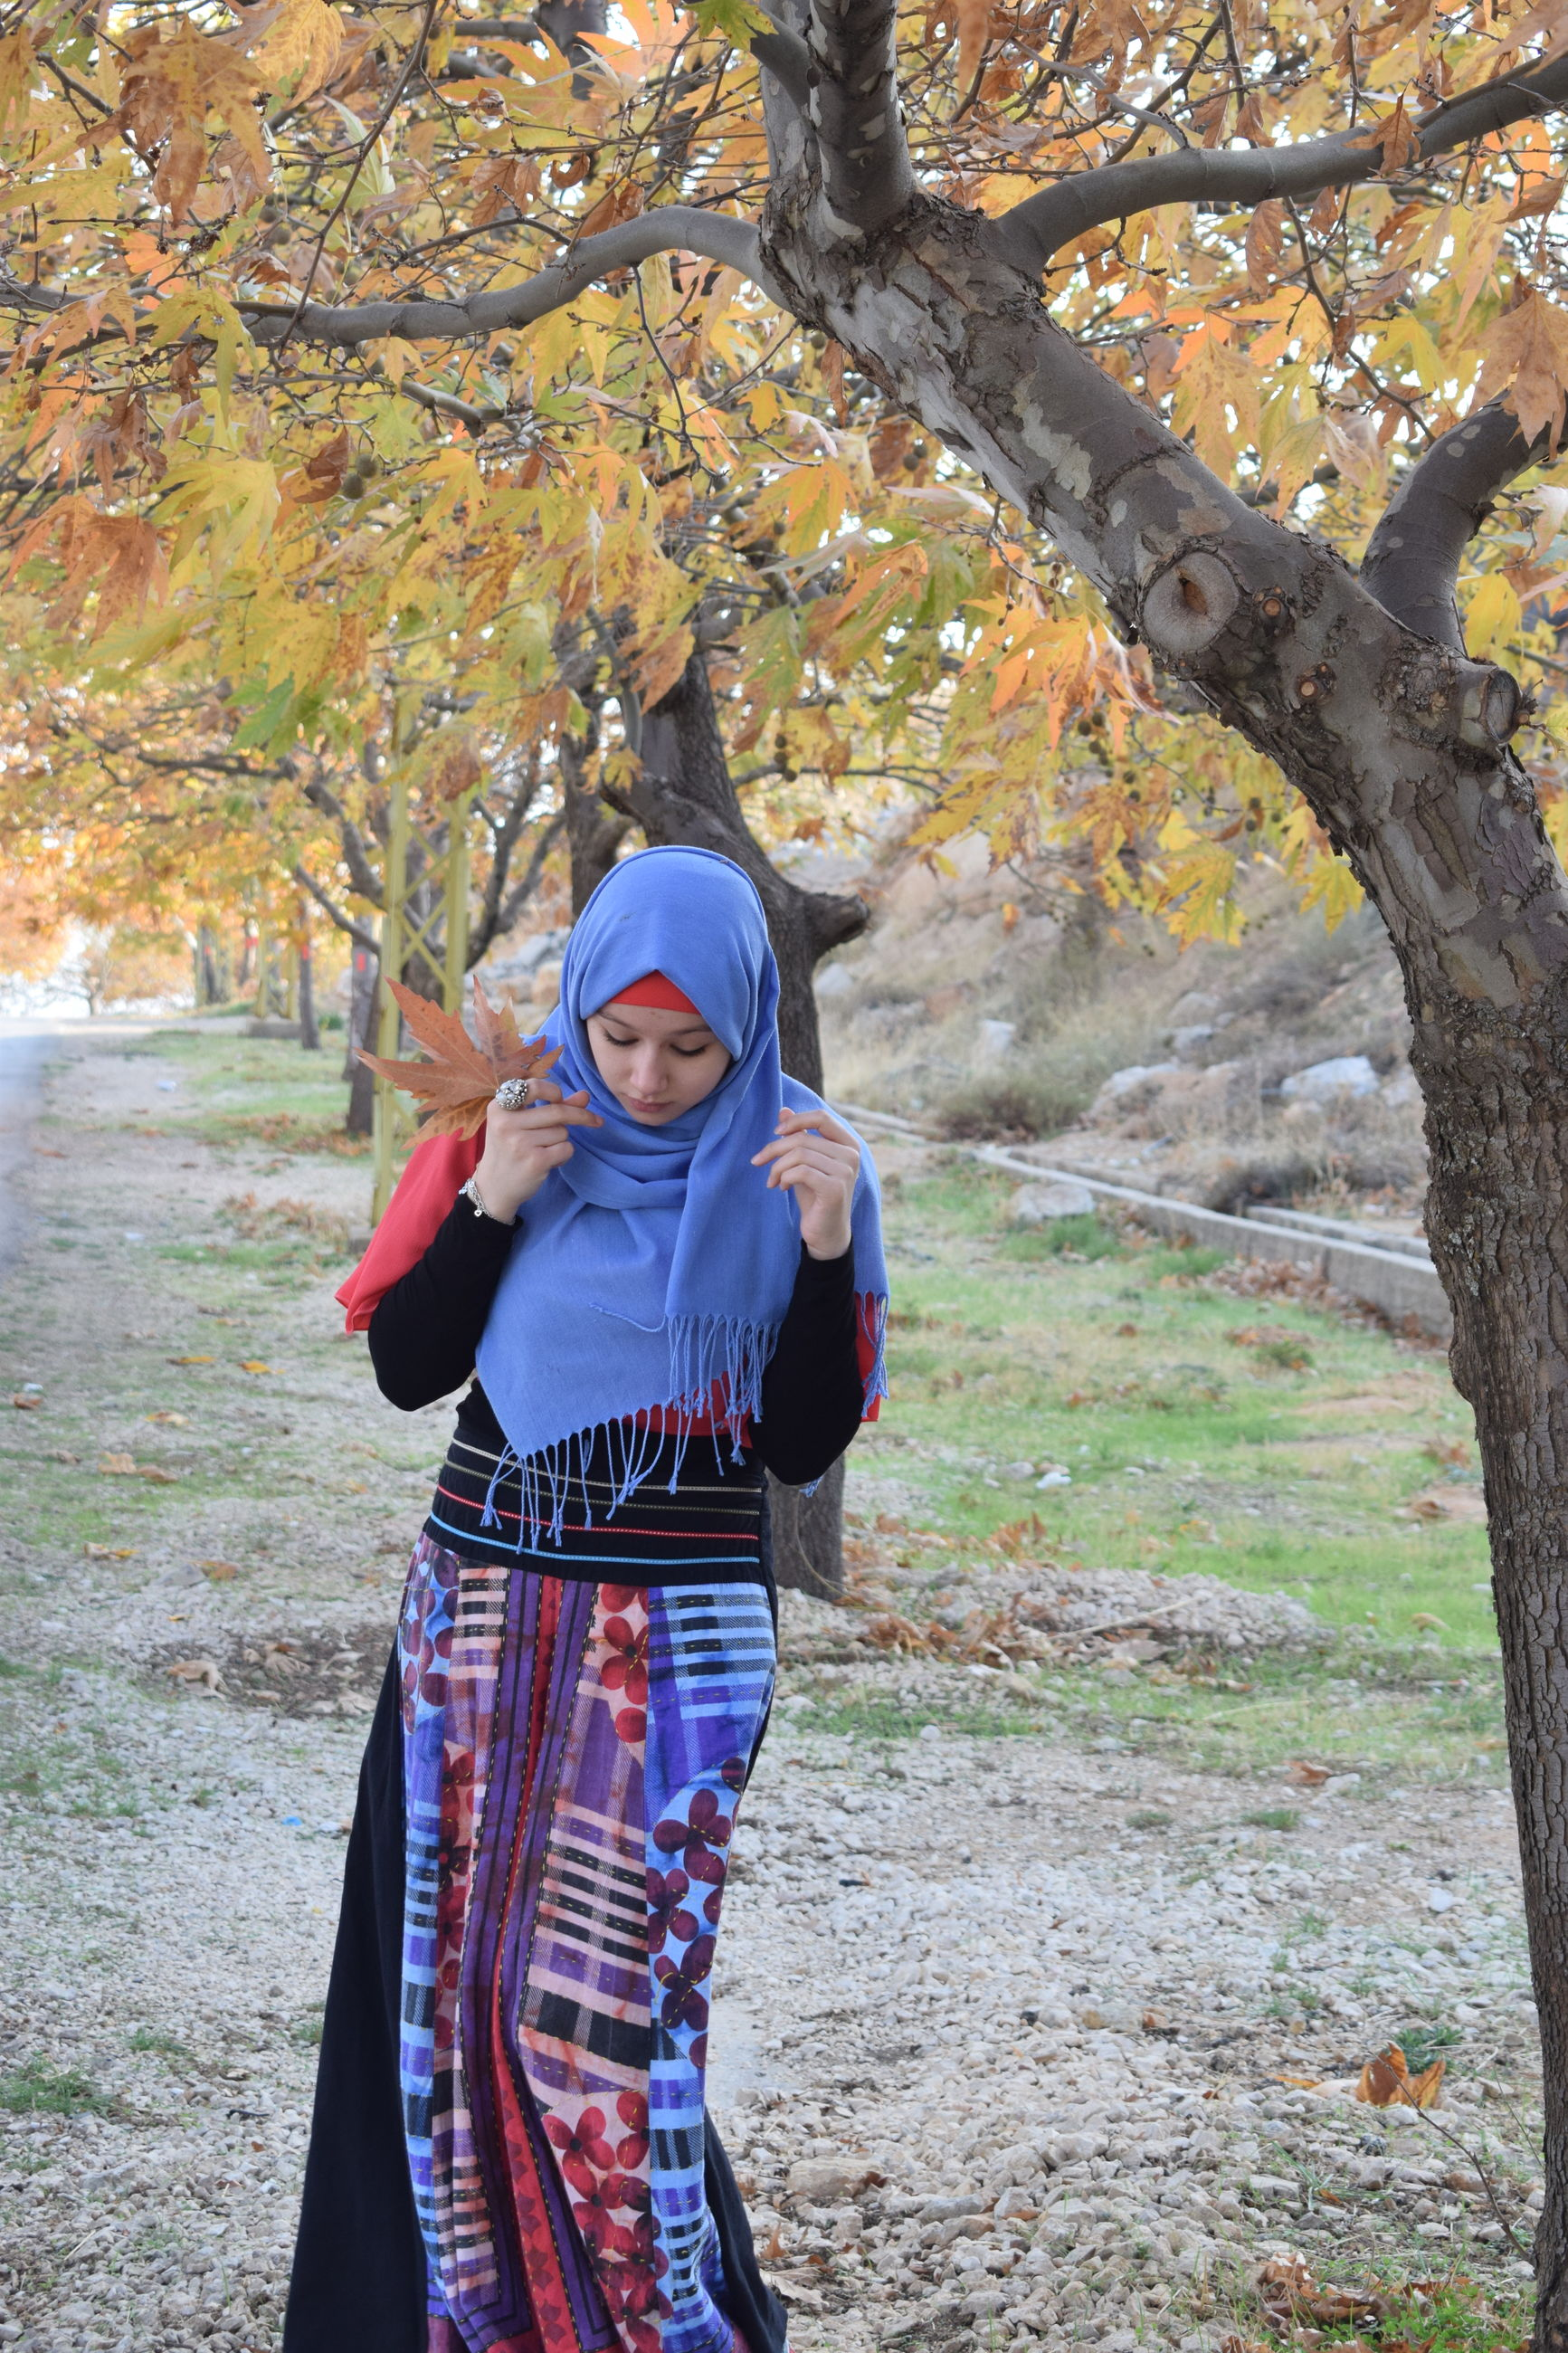 tree, real people, leisure activity, one person, autumn, front view, lifestyles, casual clothing, day, standing, change, outdoors, young women, leaf, nature, full length, young adult, growth, people